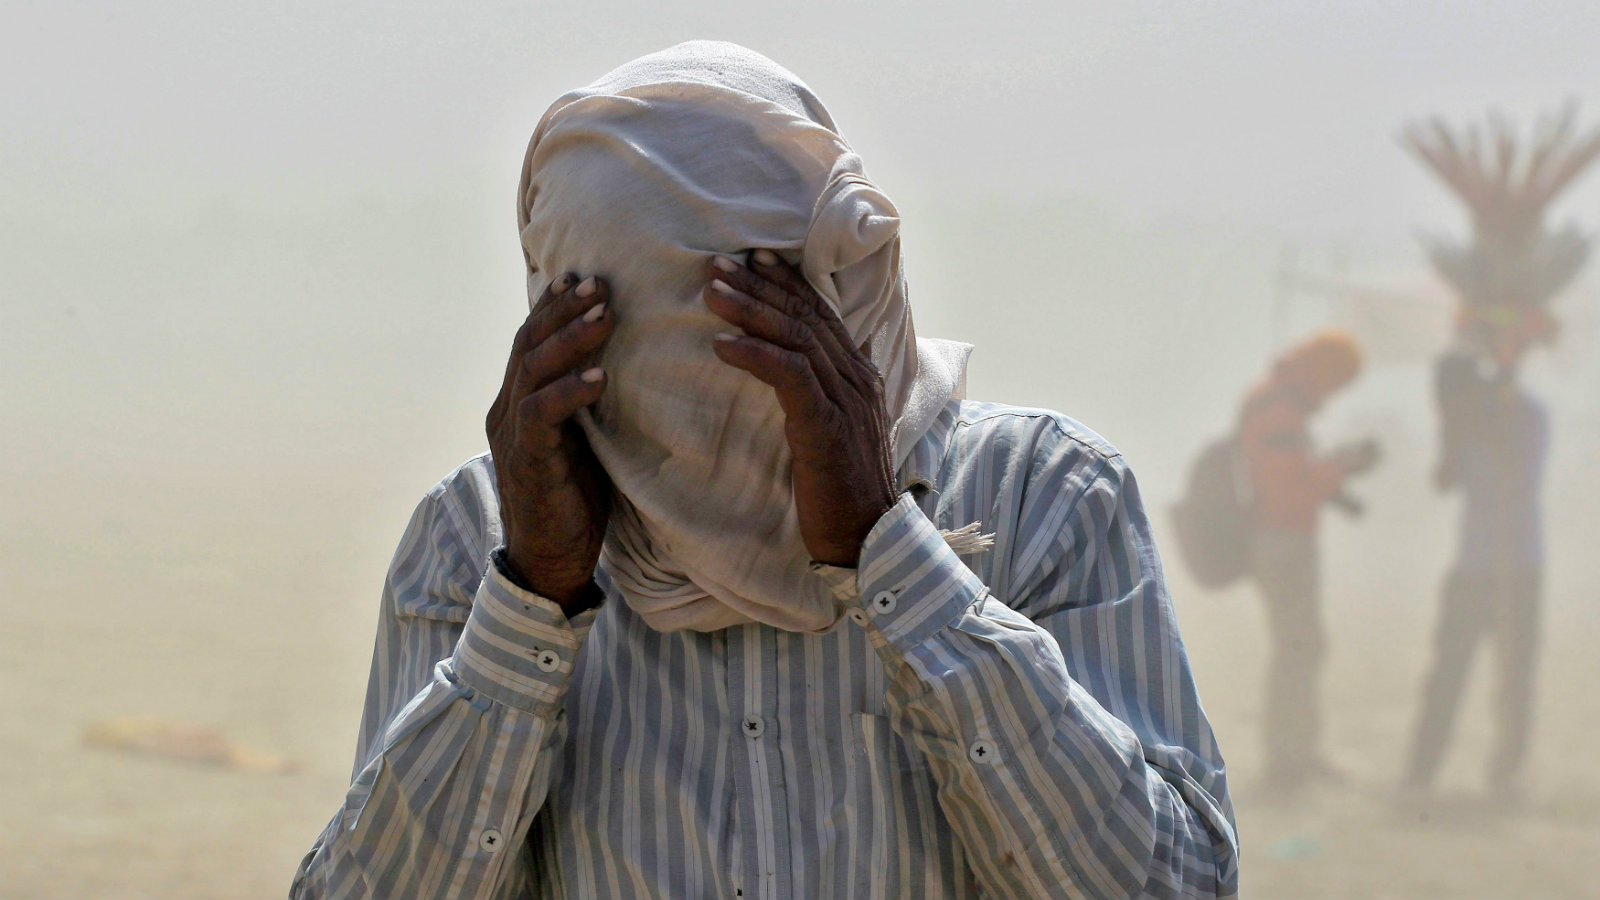 A man covers his face as he walks through a dust storm on the banks of the Ganga river in Allahabad, India, April 12, 2016